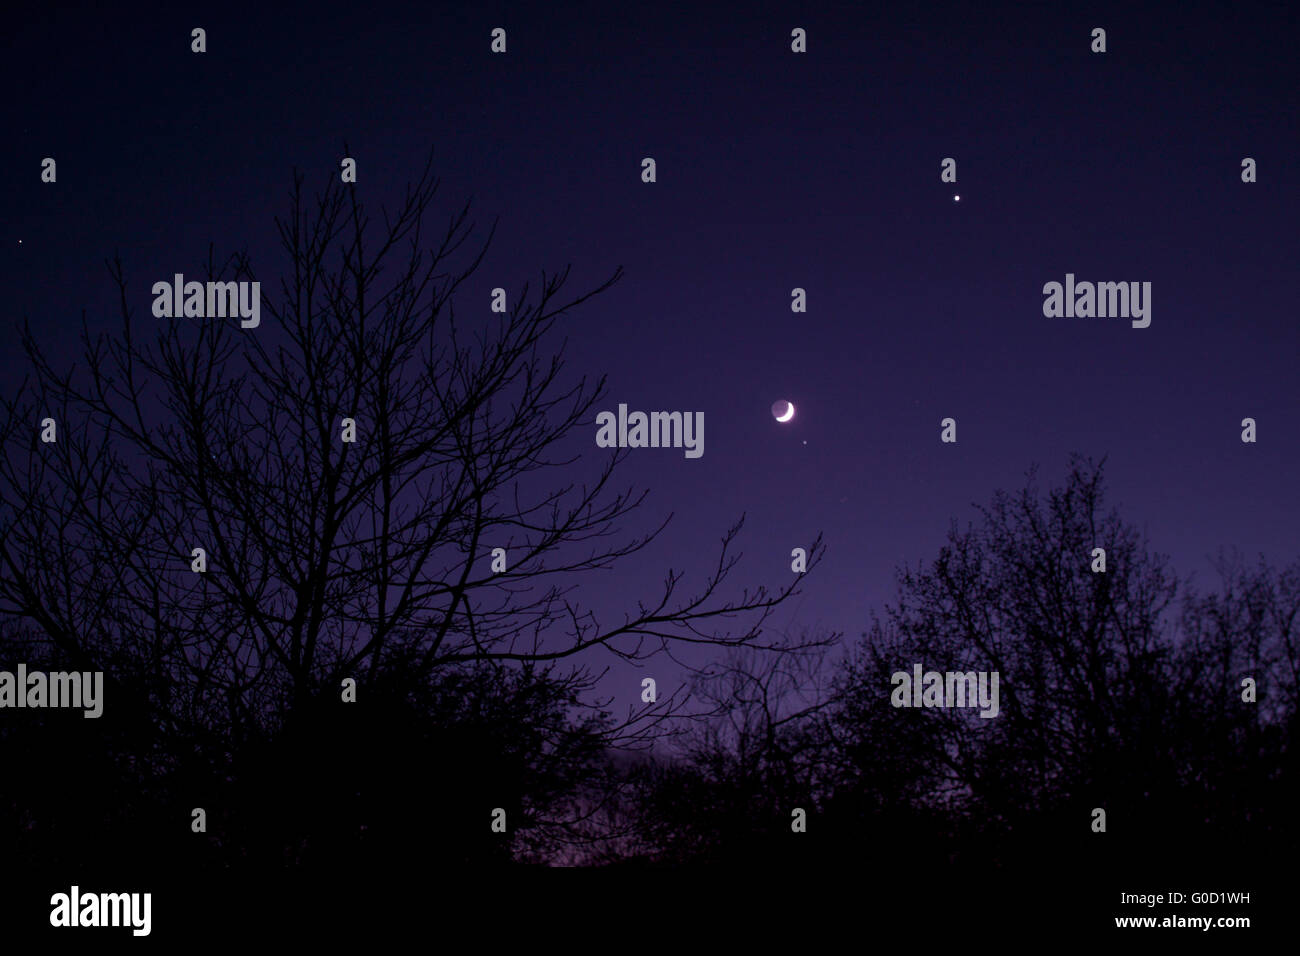 Nightsky with Moon, Venus and Aldebaran - Stock Image